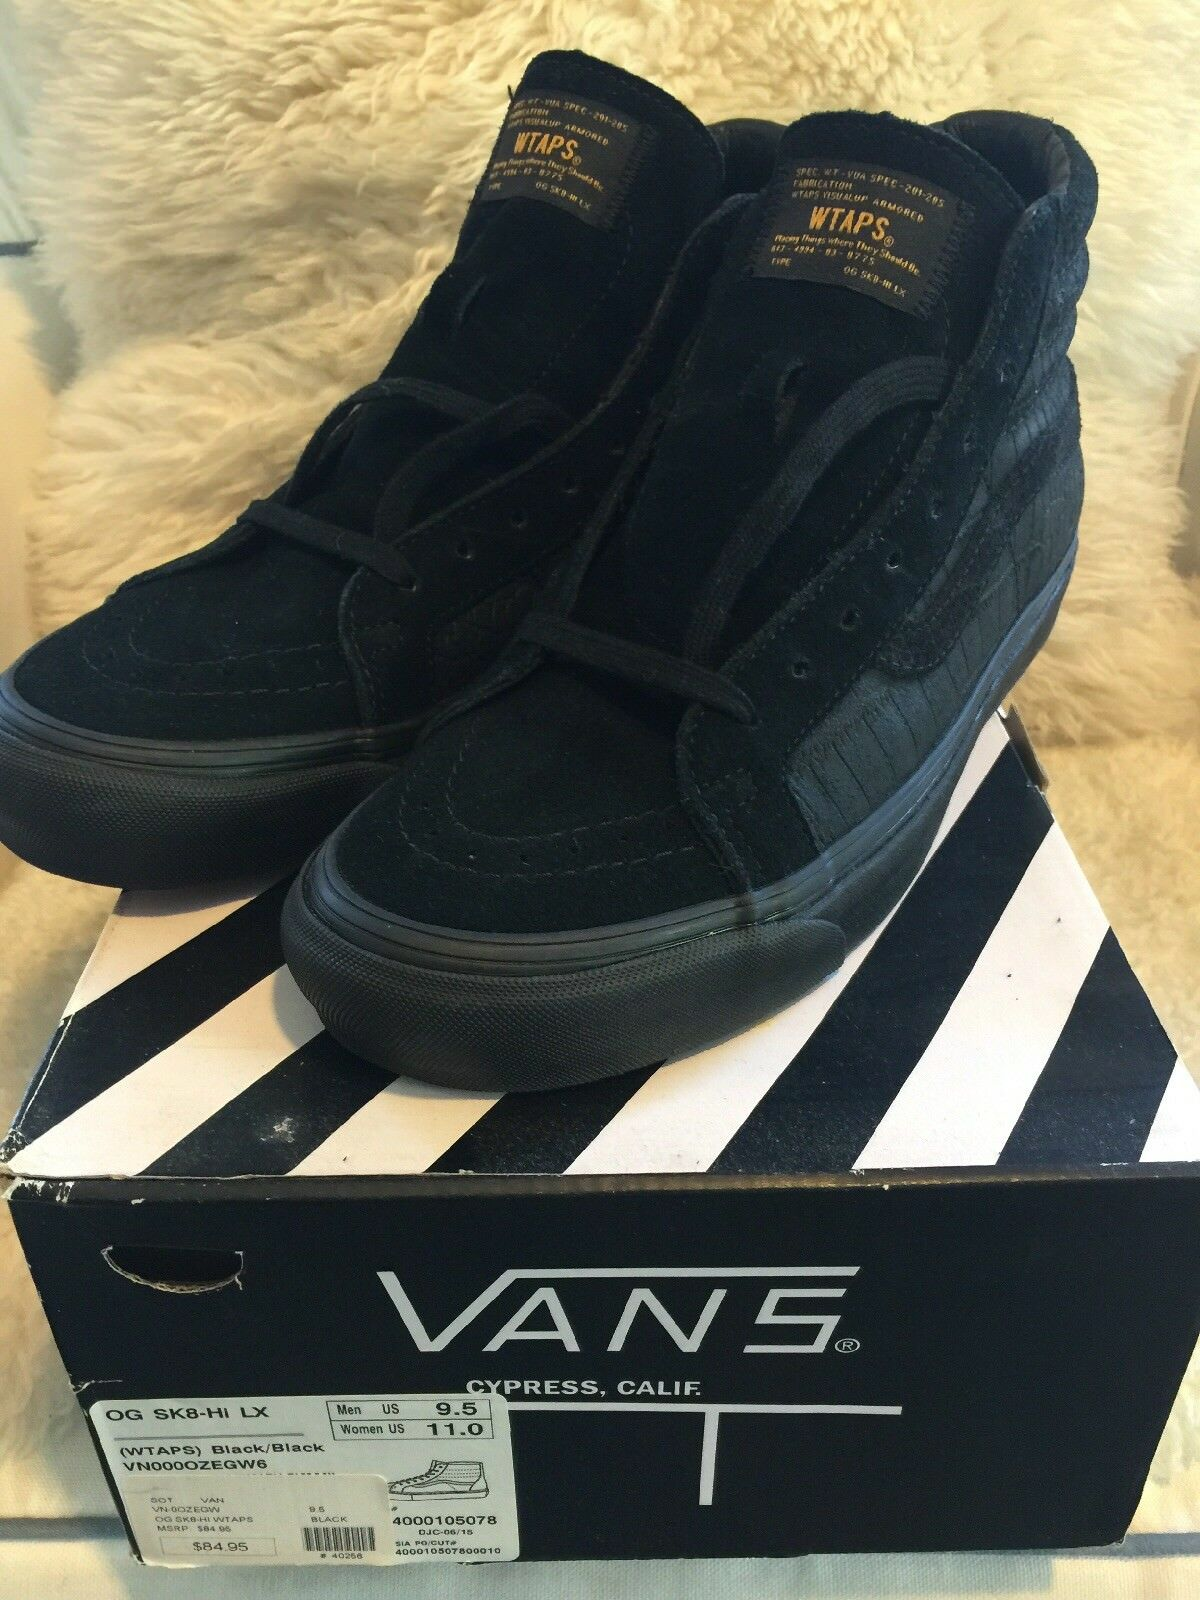 1aa1c94f0f Vans Vault X WTAPS - OG Sk8 Hi LX - Black Black - Size 9.5 - New In Box 1 of  11Only 1 available See More